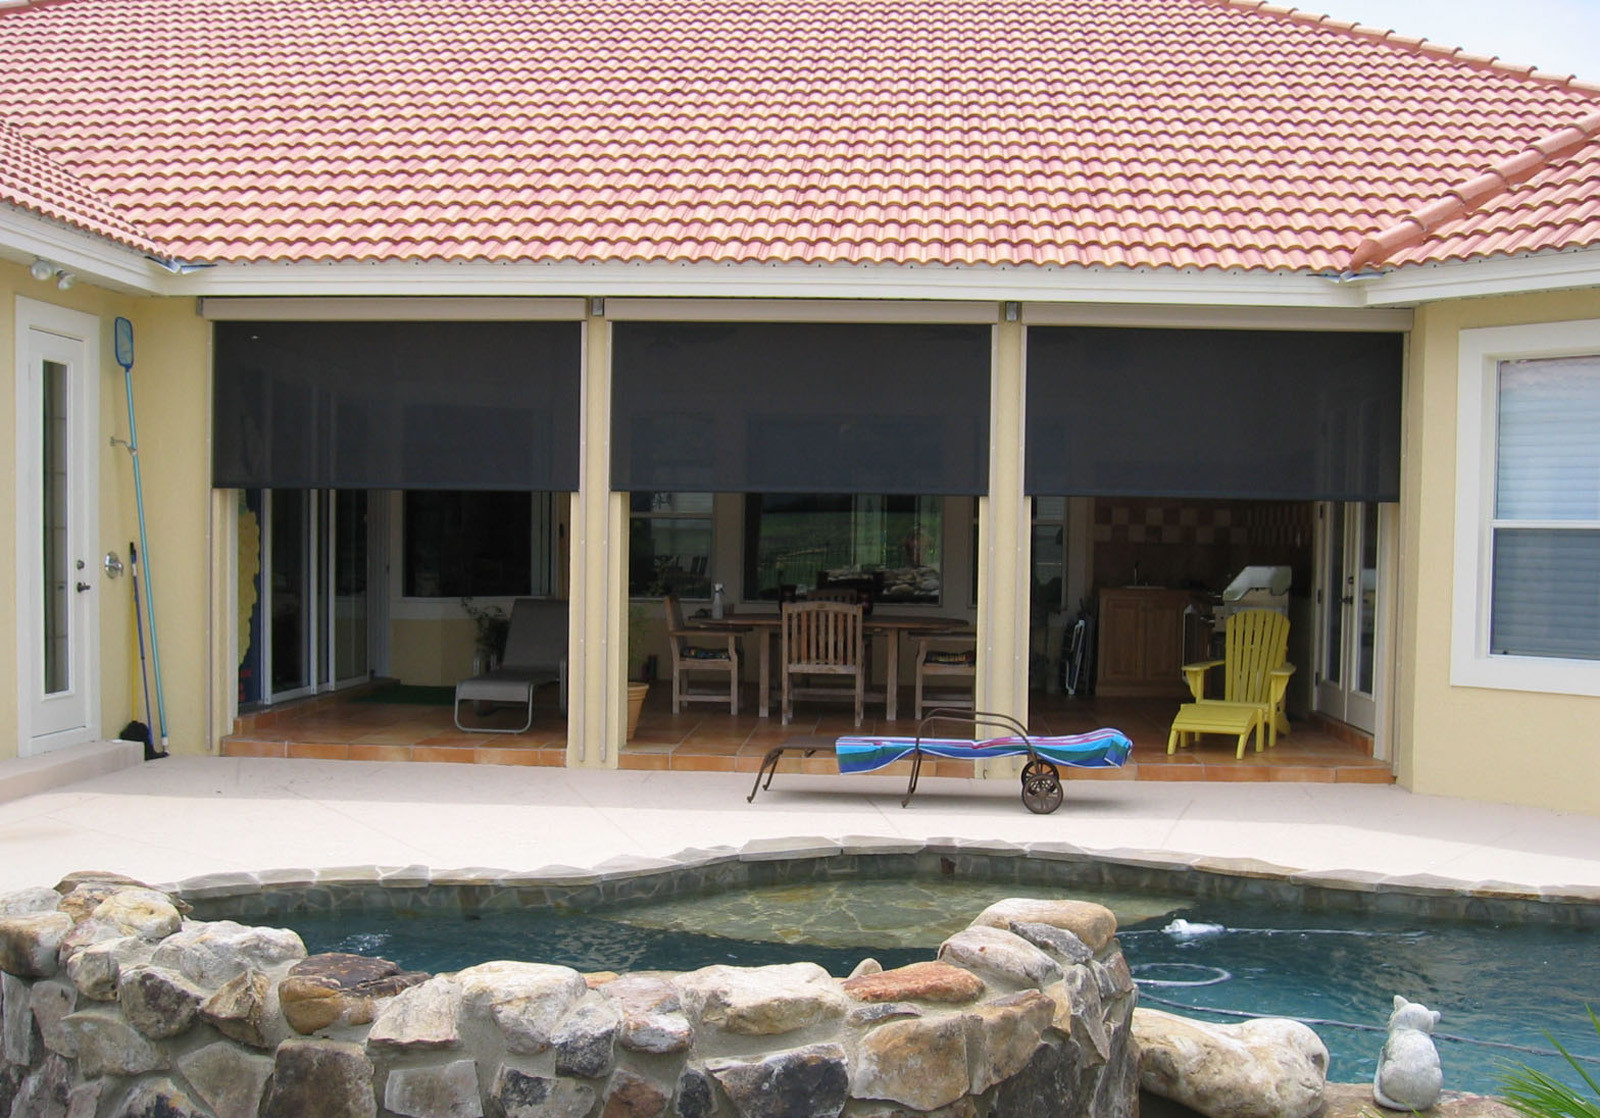 flatiron window fashions offers exterior roll down systems including custom free hanging patio shades at competitive prices solve your patio or window